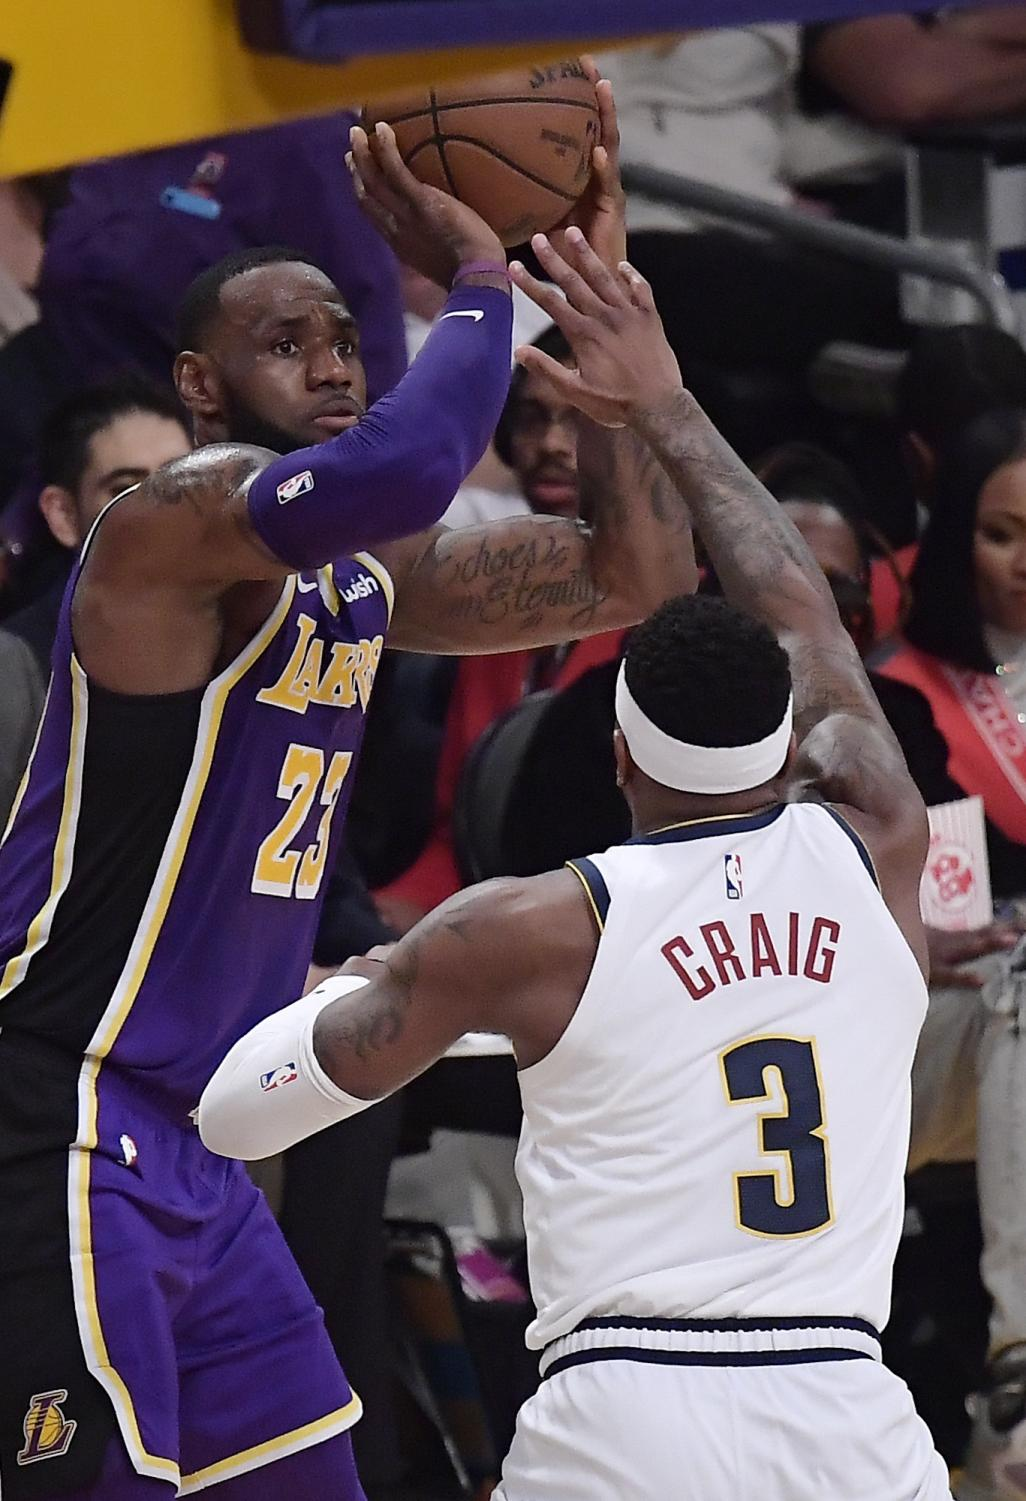 Los Angeles Lakers forward LeBron James, left, shoots and scores as Denver Nuggets forward Torrey Craig defends during the first half of an NBA basketball game Wednesday, March 6, 2019, in Los Angeles. With that basket, James tied Michael Jordan on the NBA career scoring list. (AP Photo/Mark J. Terrill)